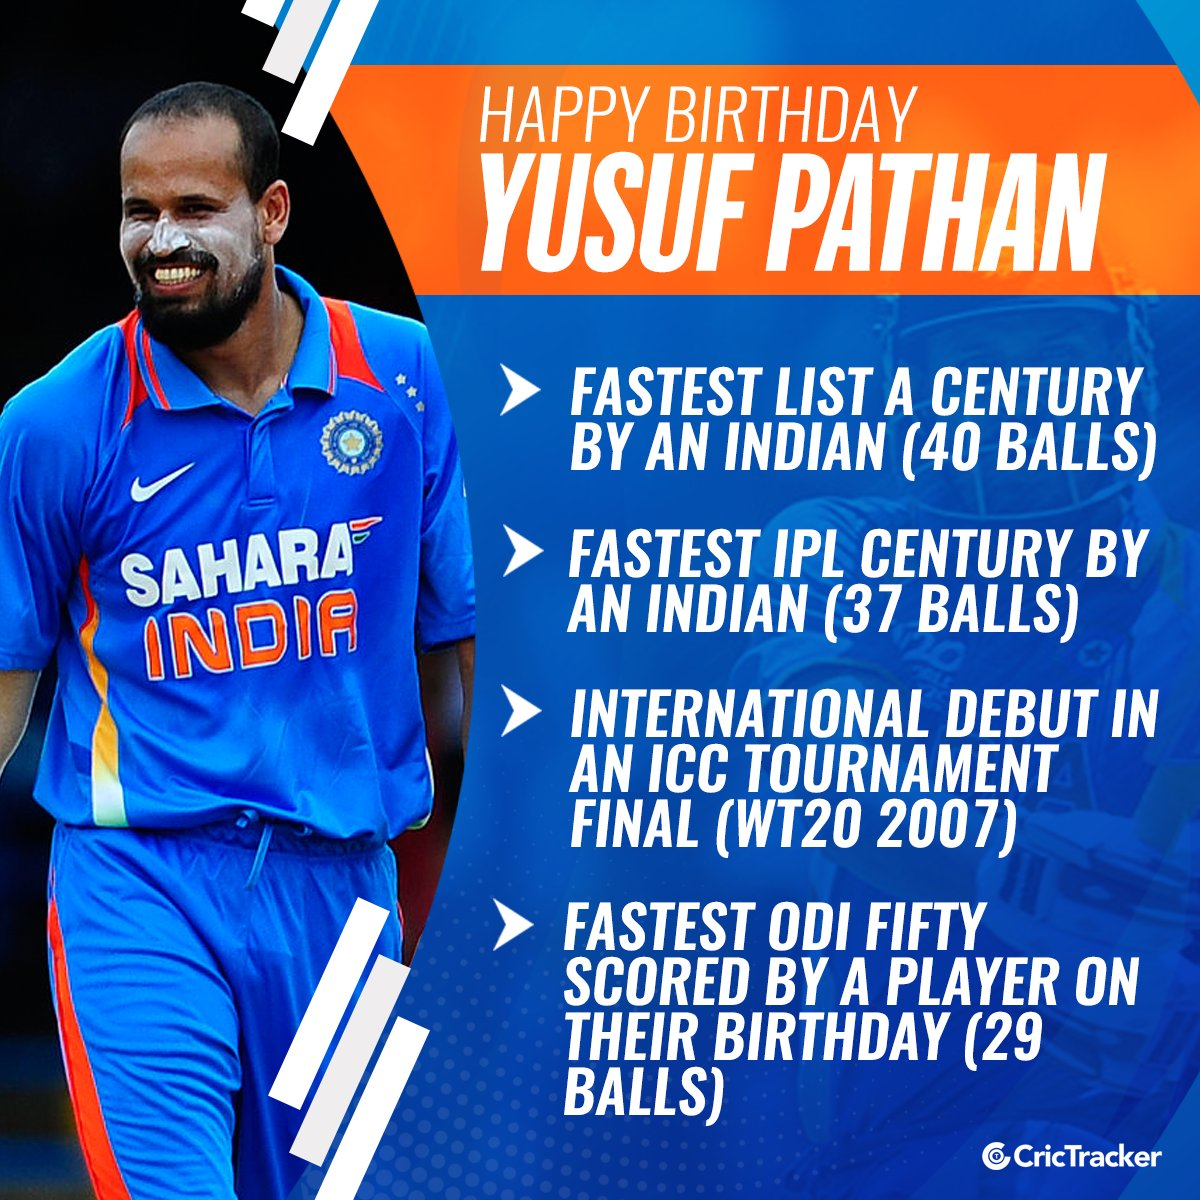 Wishing Indian all-rounder Yusuf Pathan a very happy birthday.  #YusufPathan #India #Cricket #CricTracker